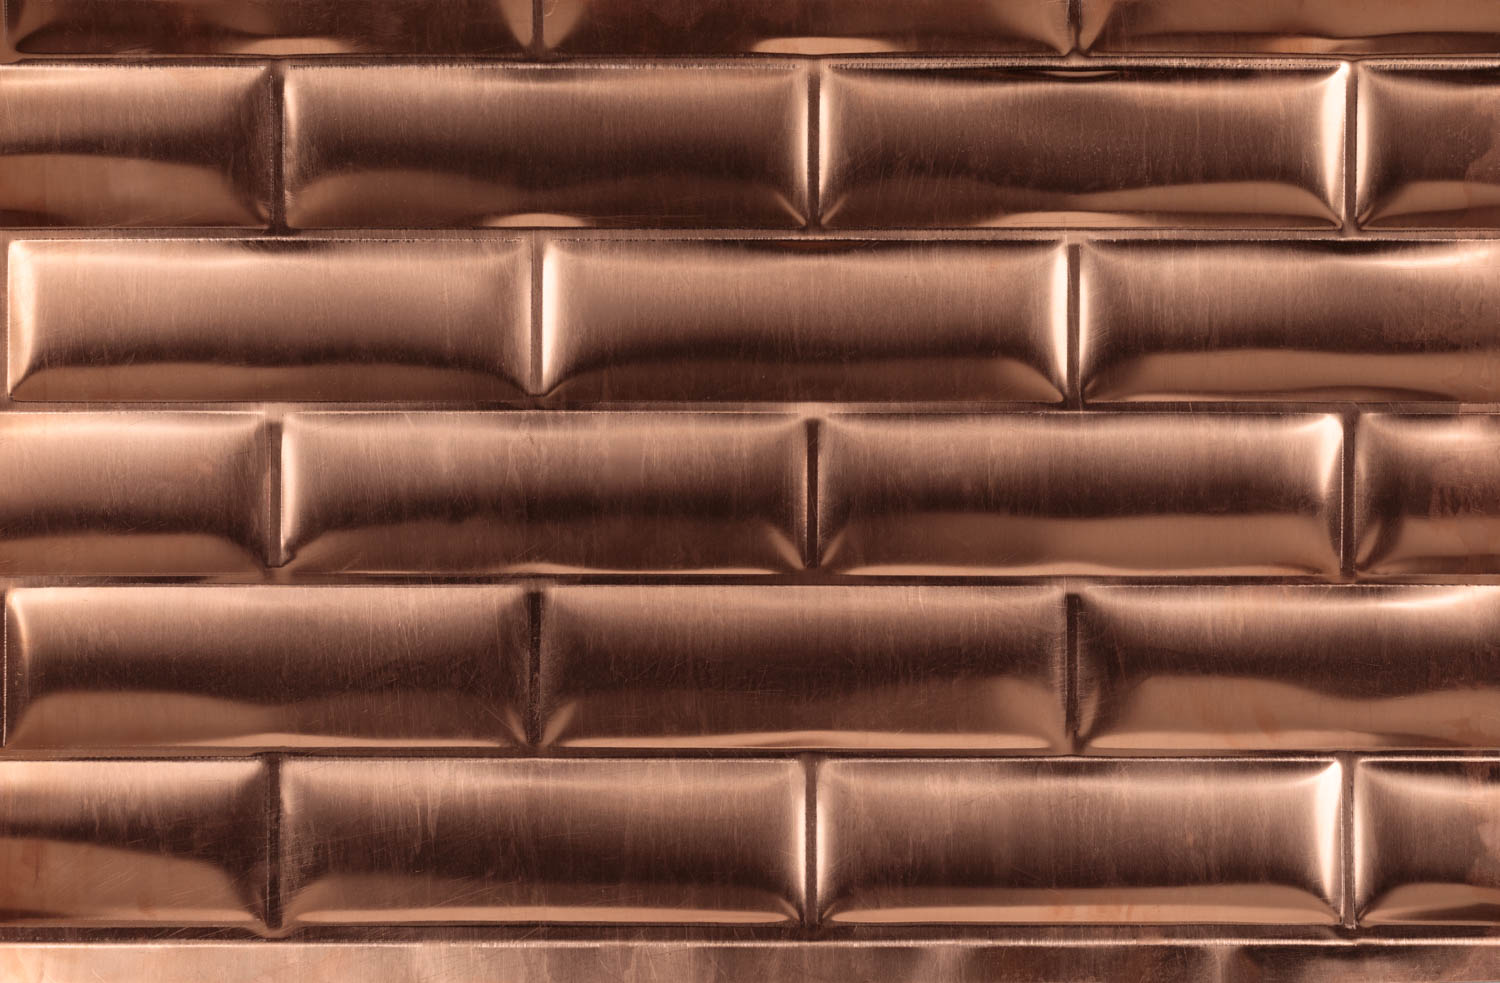 Copper subway tiles